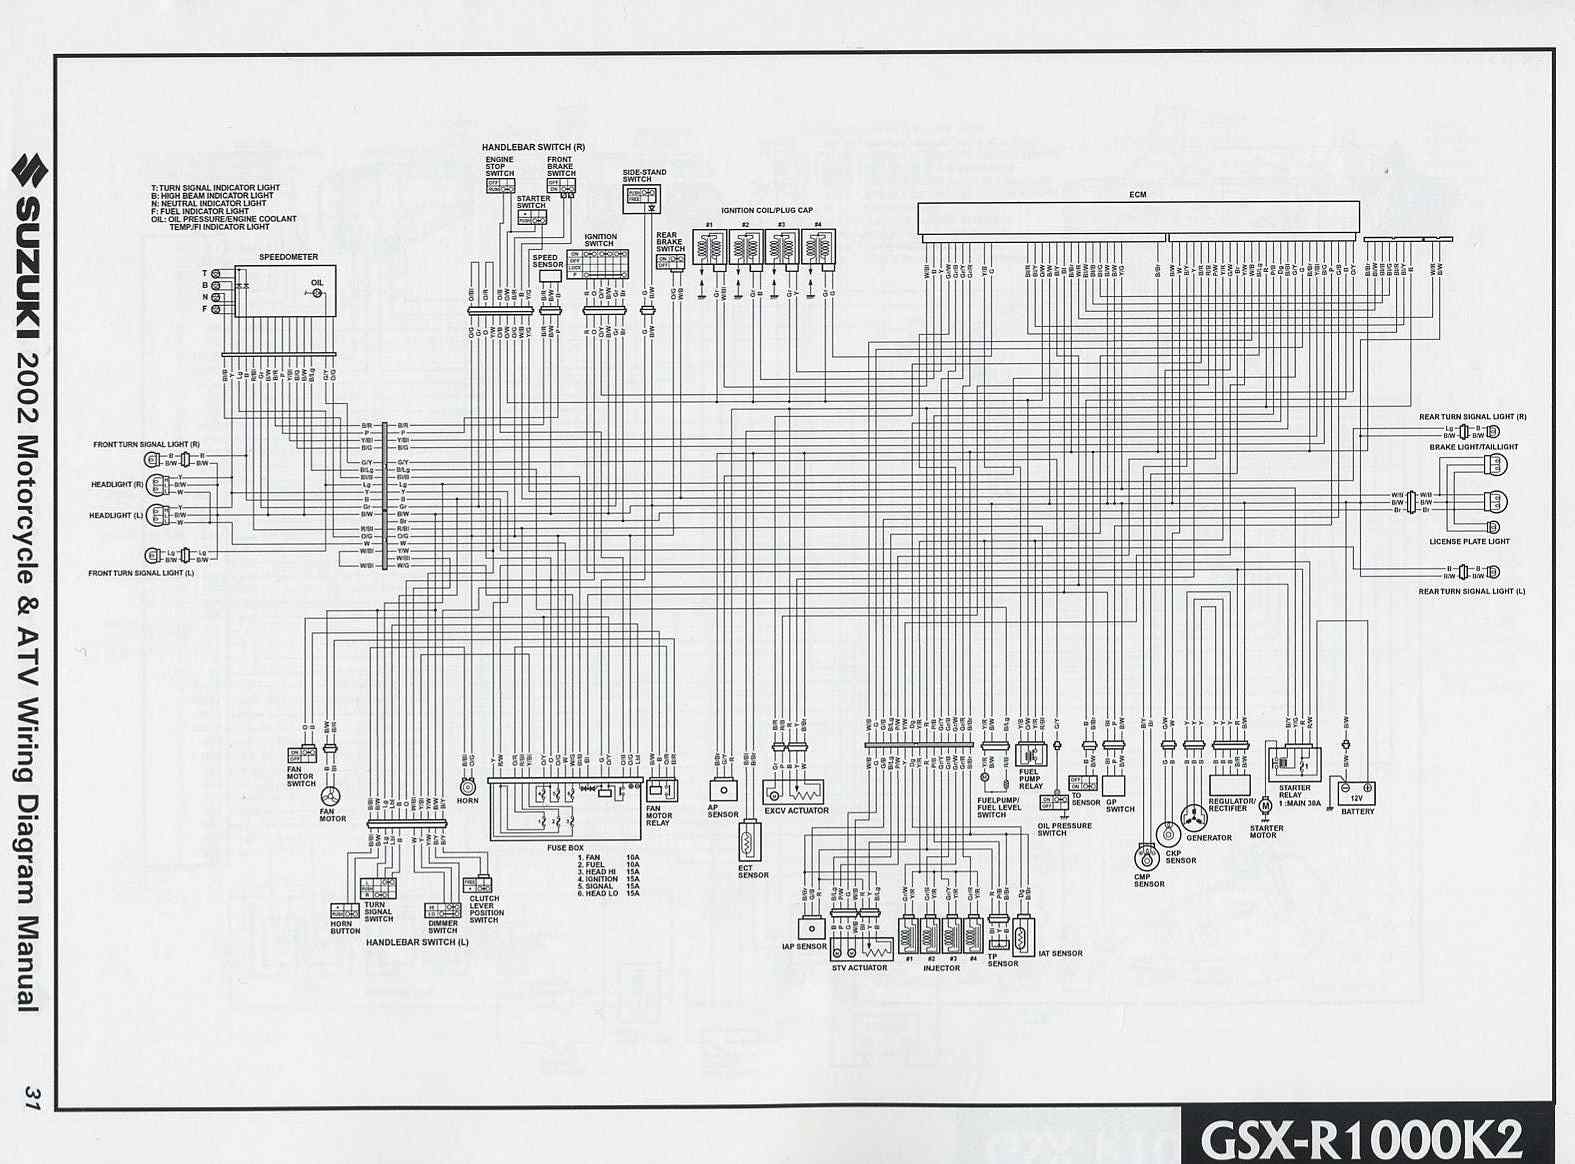 small resolution of 2001 suzuki gsxr 1000 wiring diagram wiring diagrams img rh 48 andreas bolz de 2001 suzuki